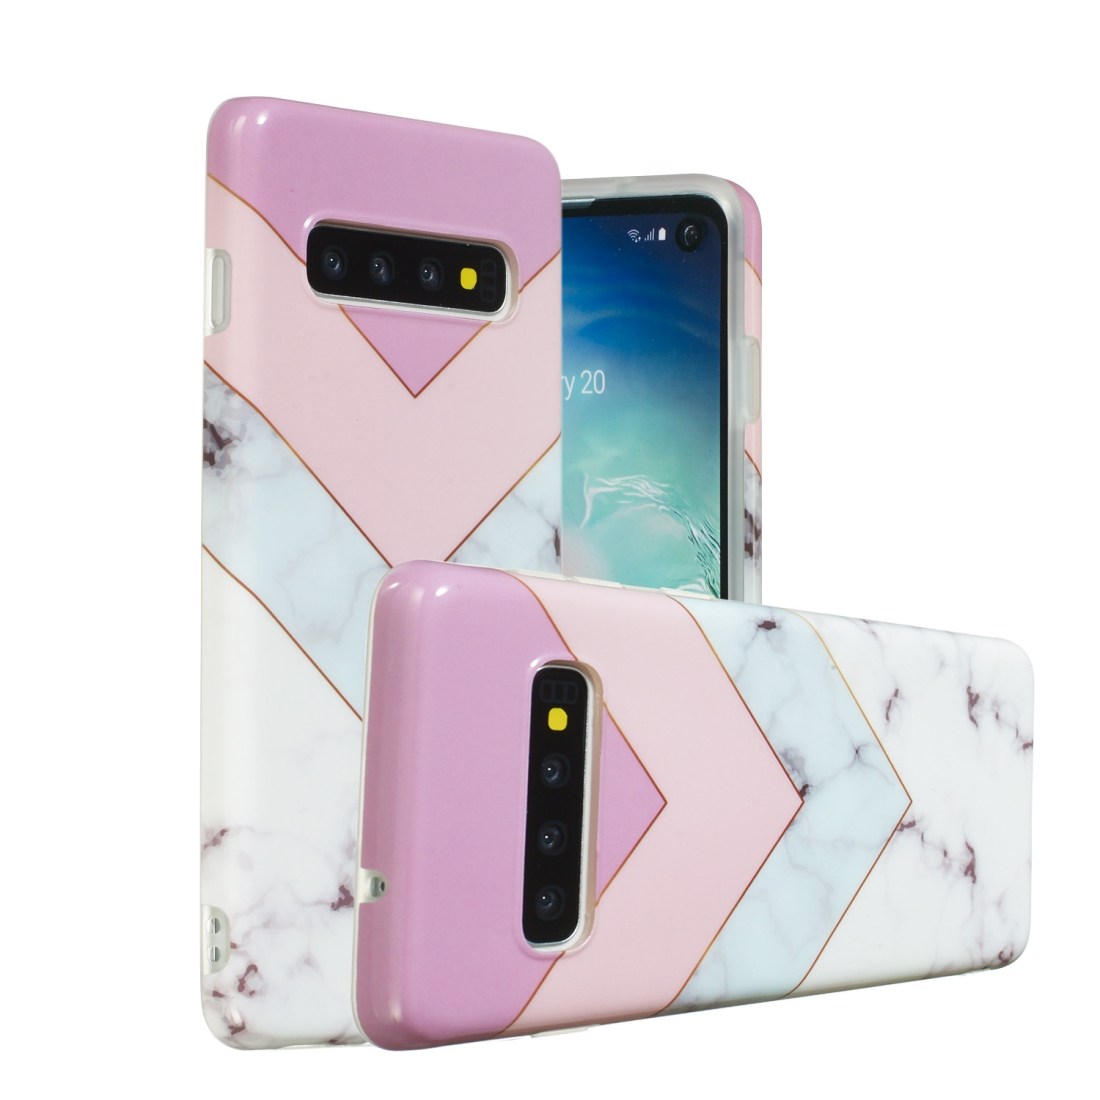 TPU Protective Case For Galaxy S10 Plus (Stitching Tricolor)